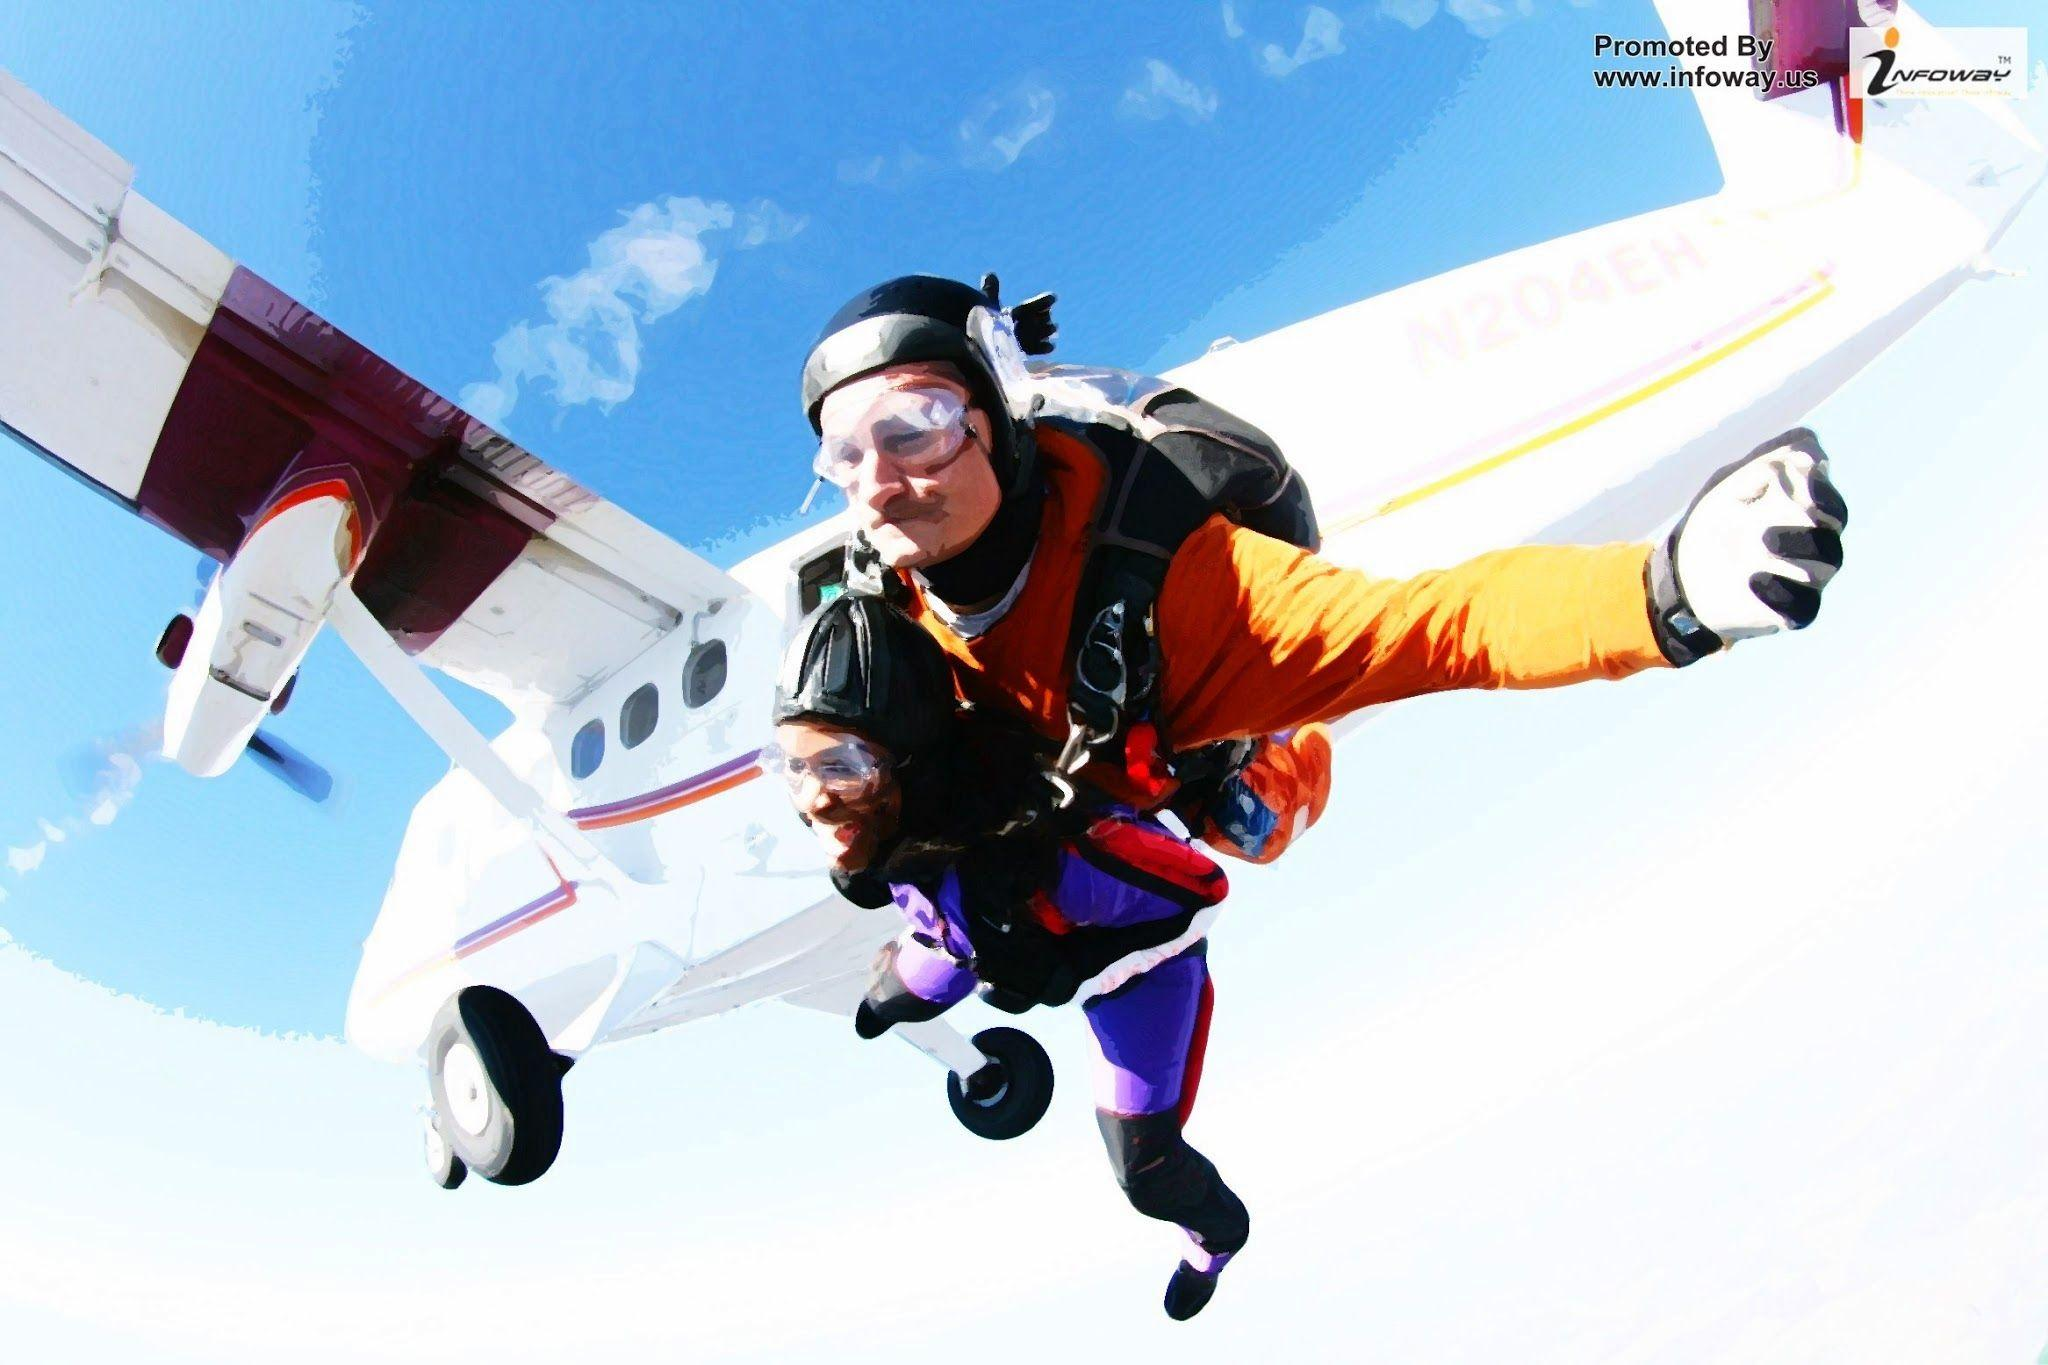 Skydive Free Fall Sports Wallpaper: Skydiving Wallpapers